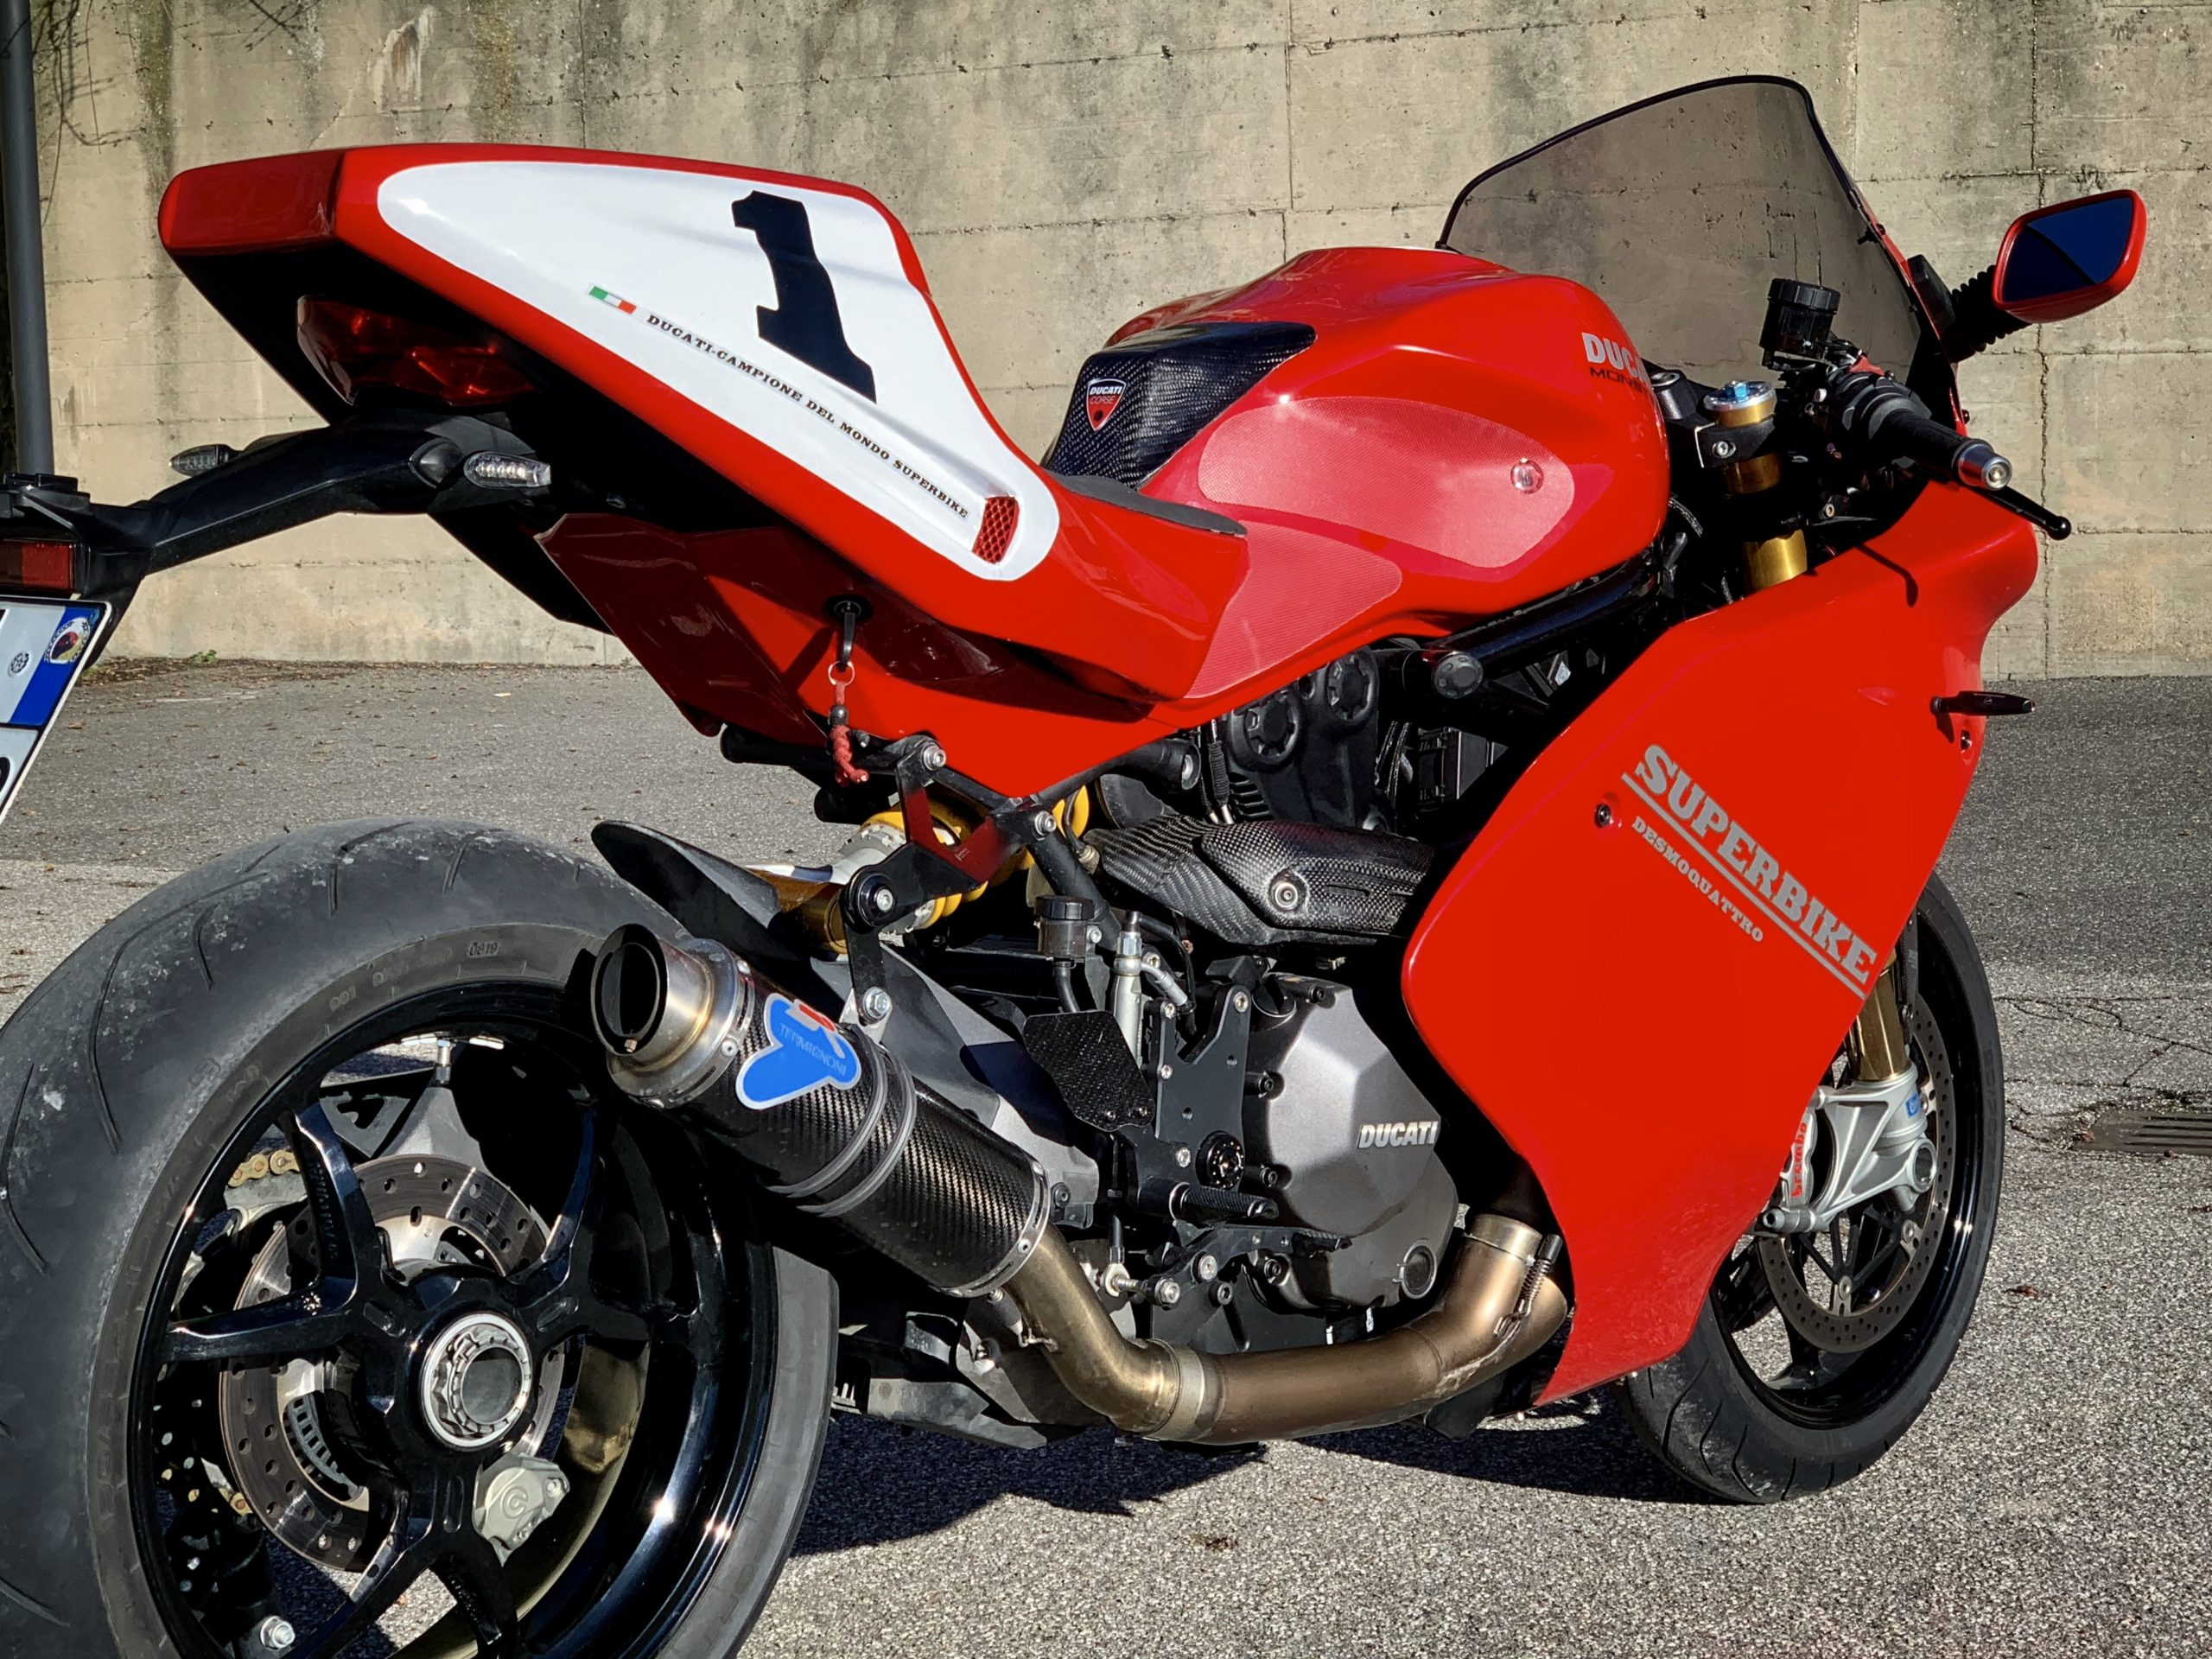 Custom Ducati Monster mixed with Ducati 900SS - termignoni